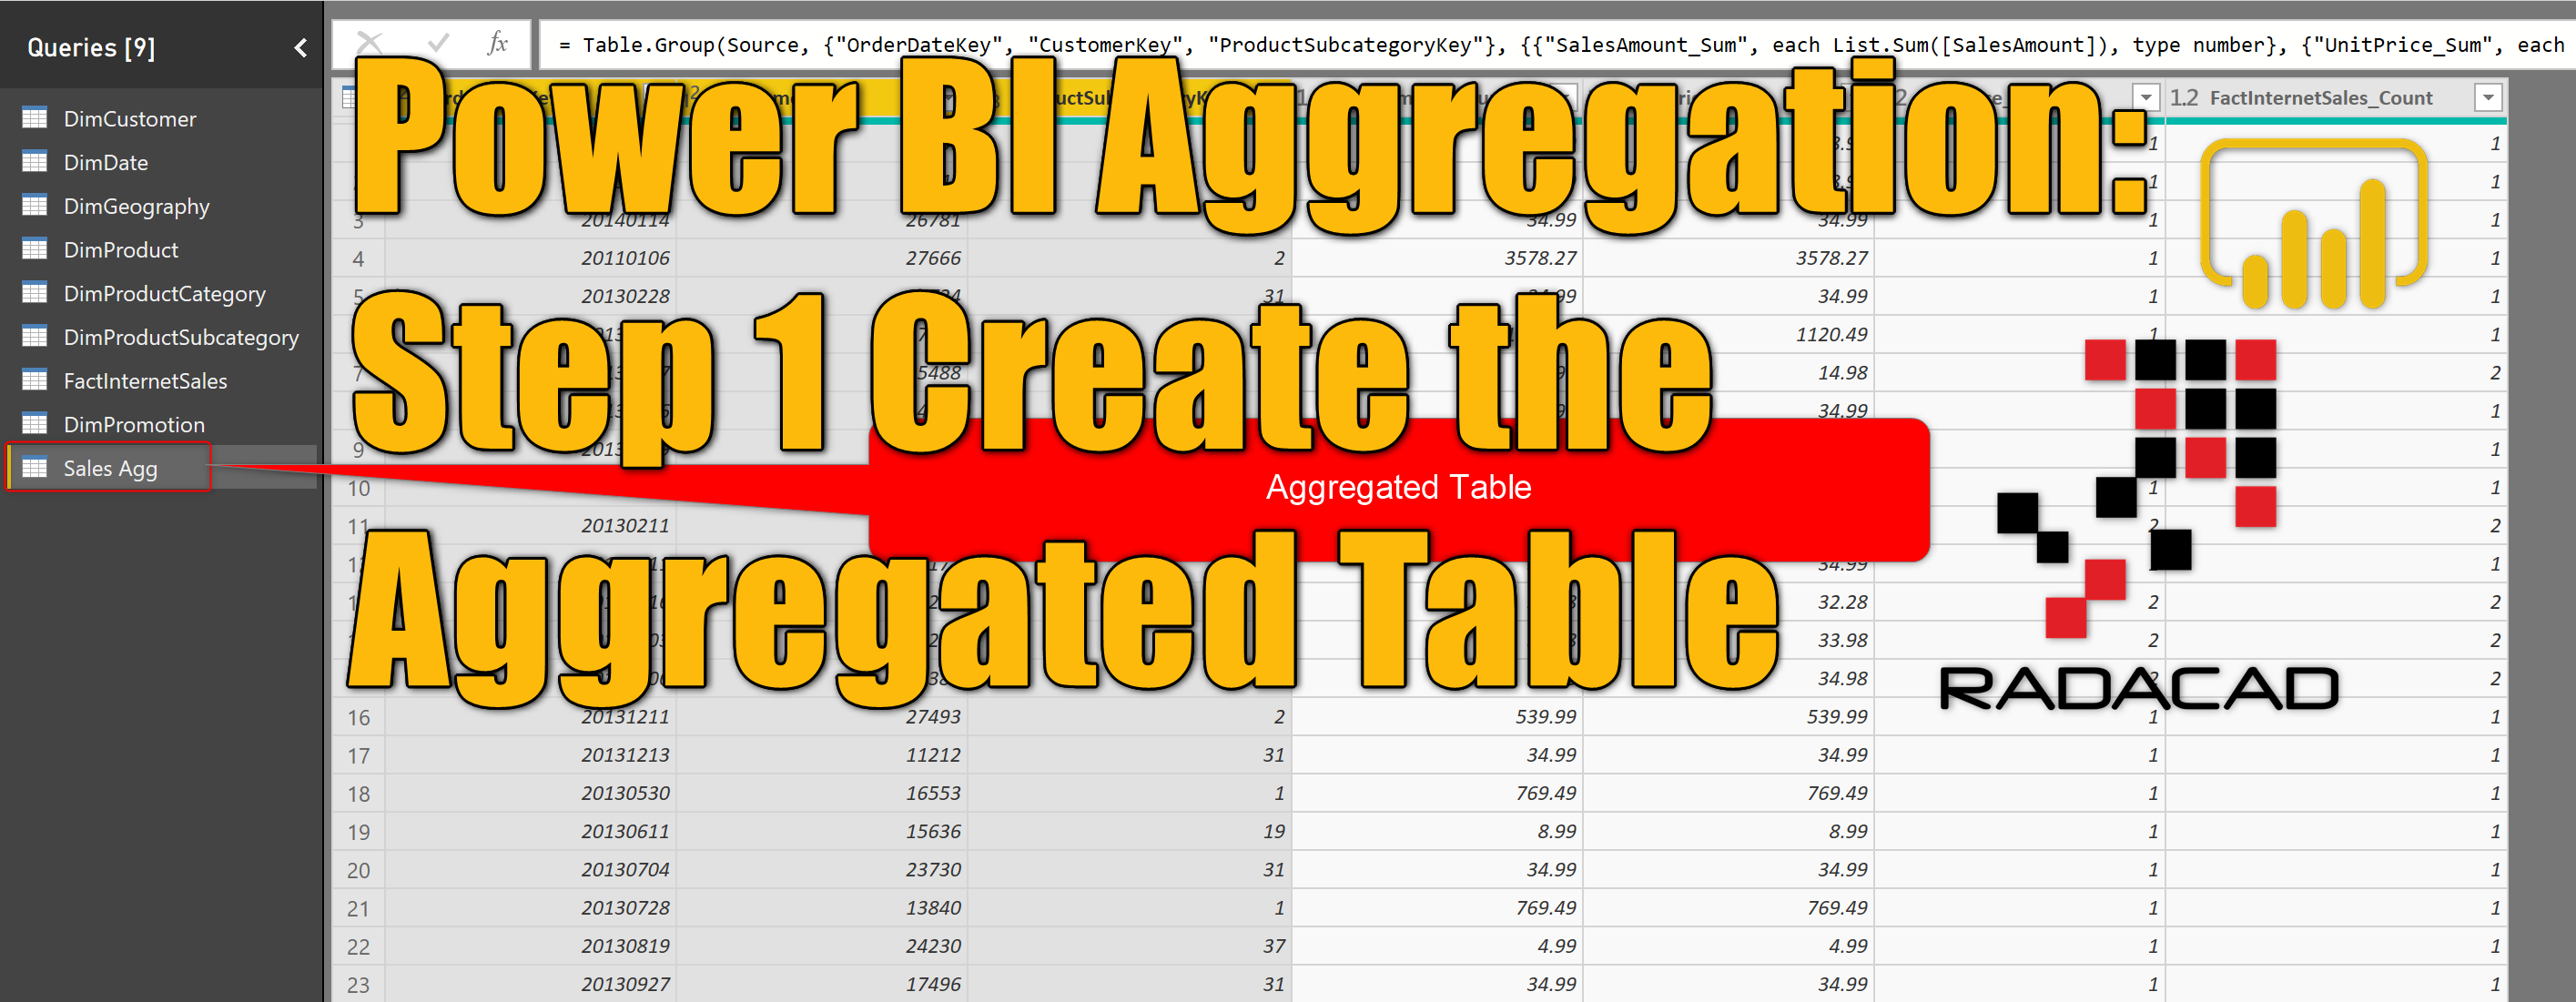 Power BI Aggregation: Step 1 Create the Aggregated Table | RADACAD